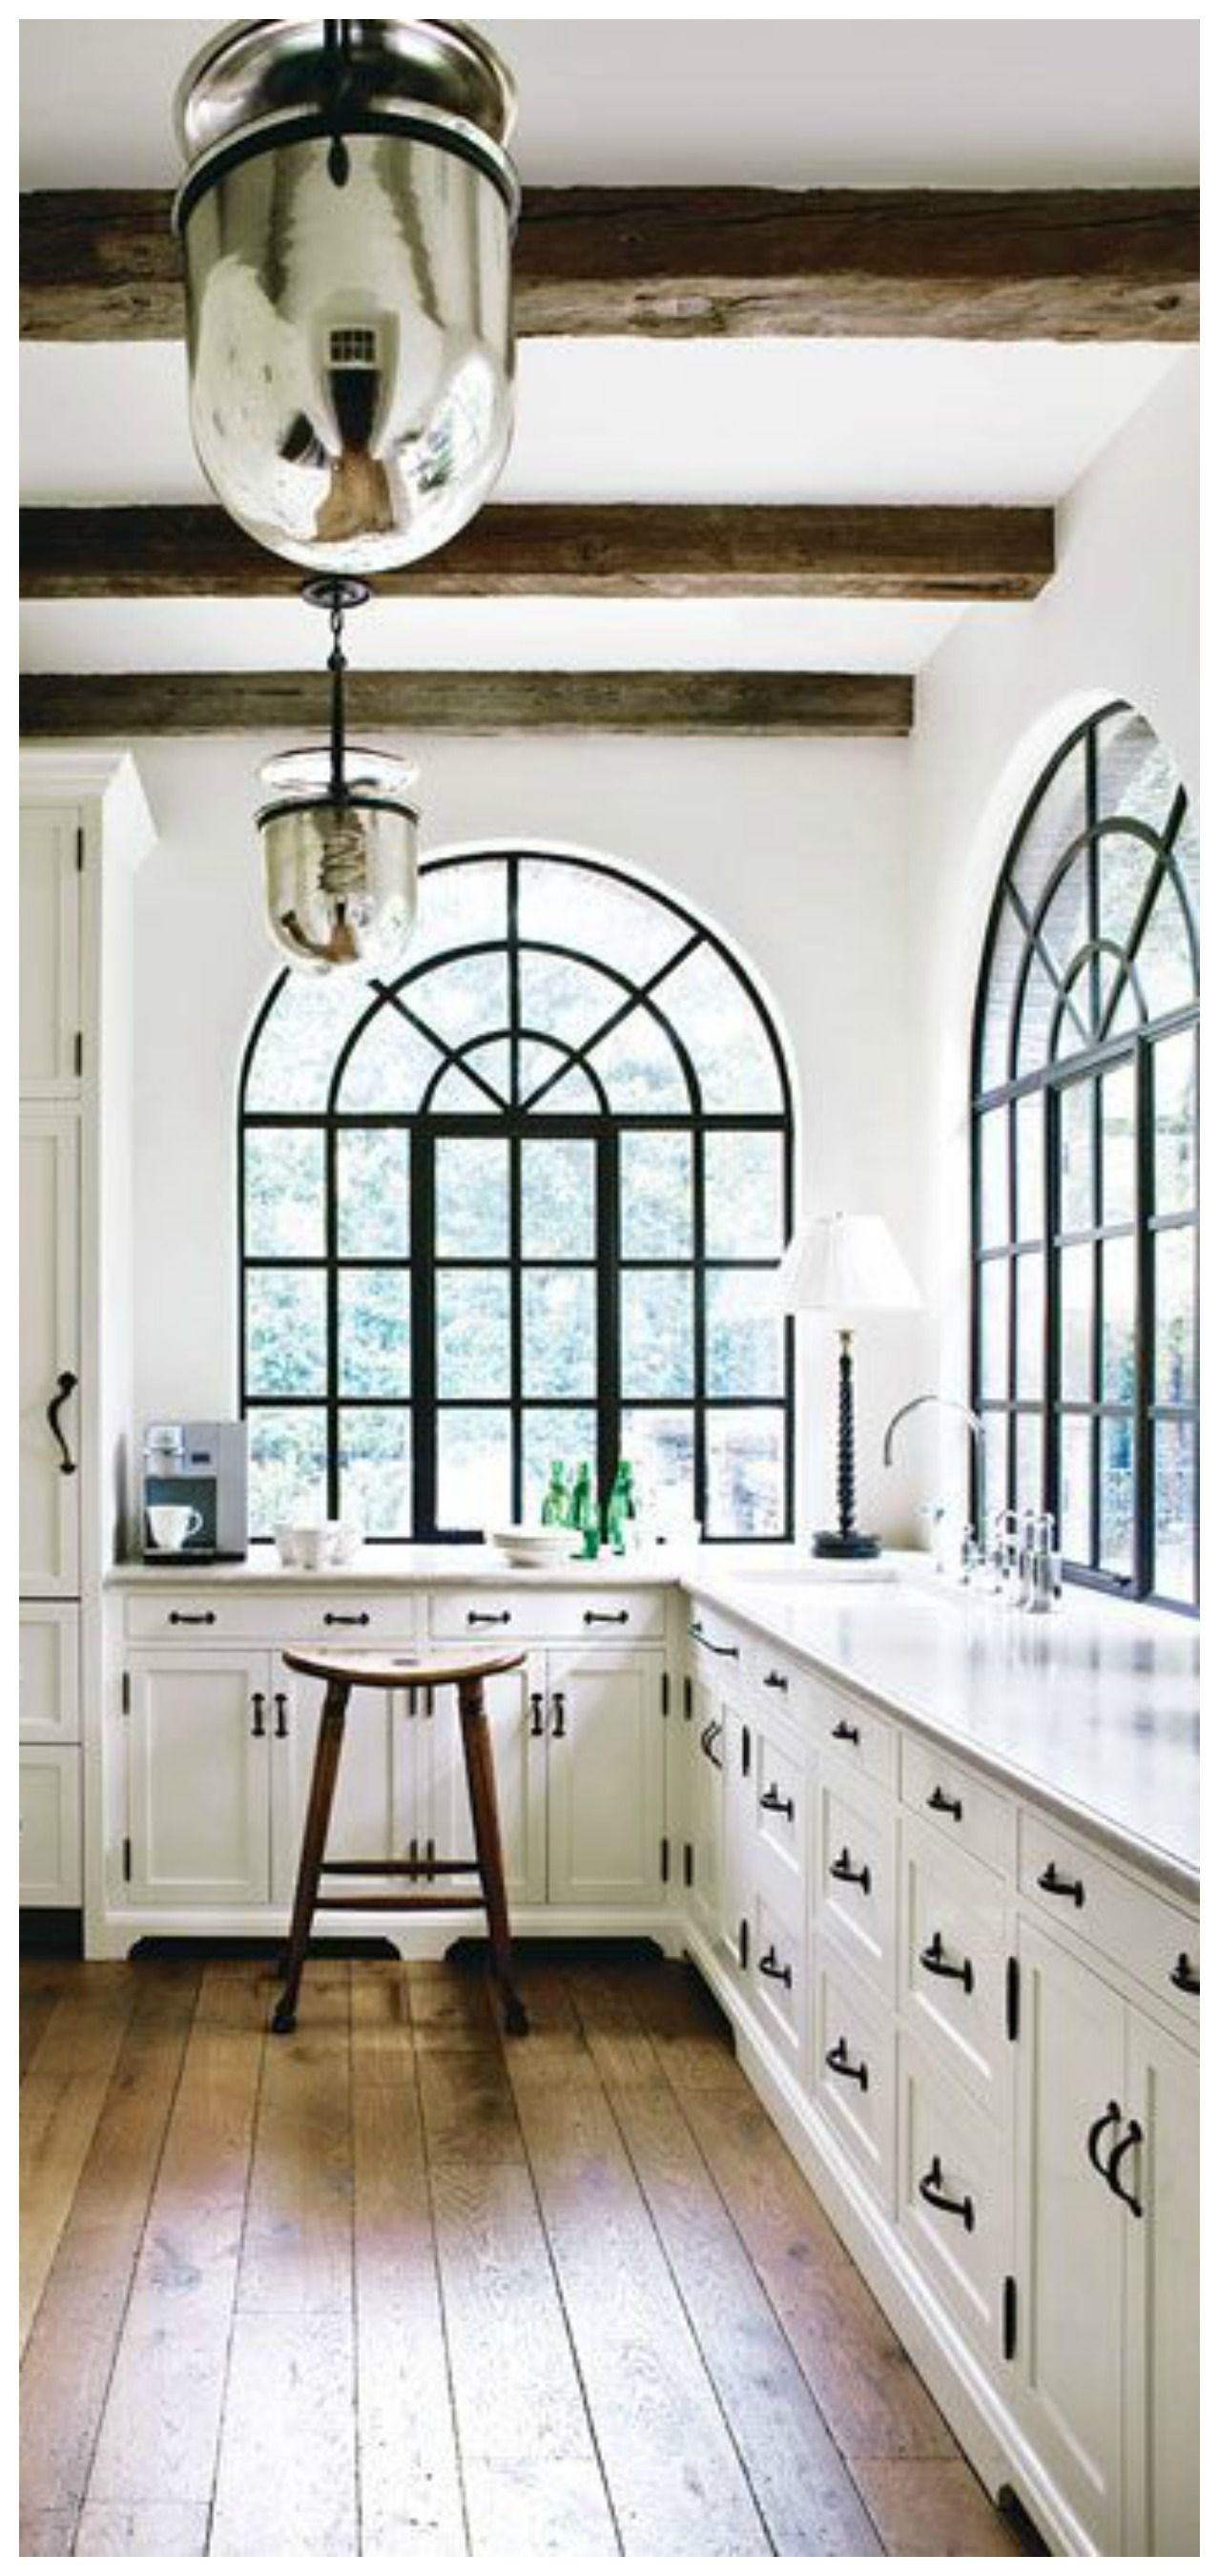 pin by tam s boards on salt and pepper cottage white kitchen cabinets kitchen cabinets decor on kitchen cabinets not white id=15342